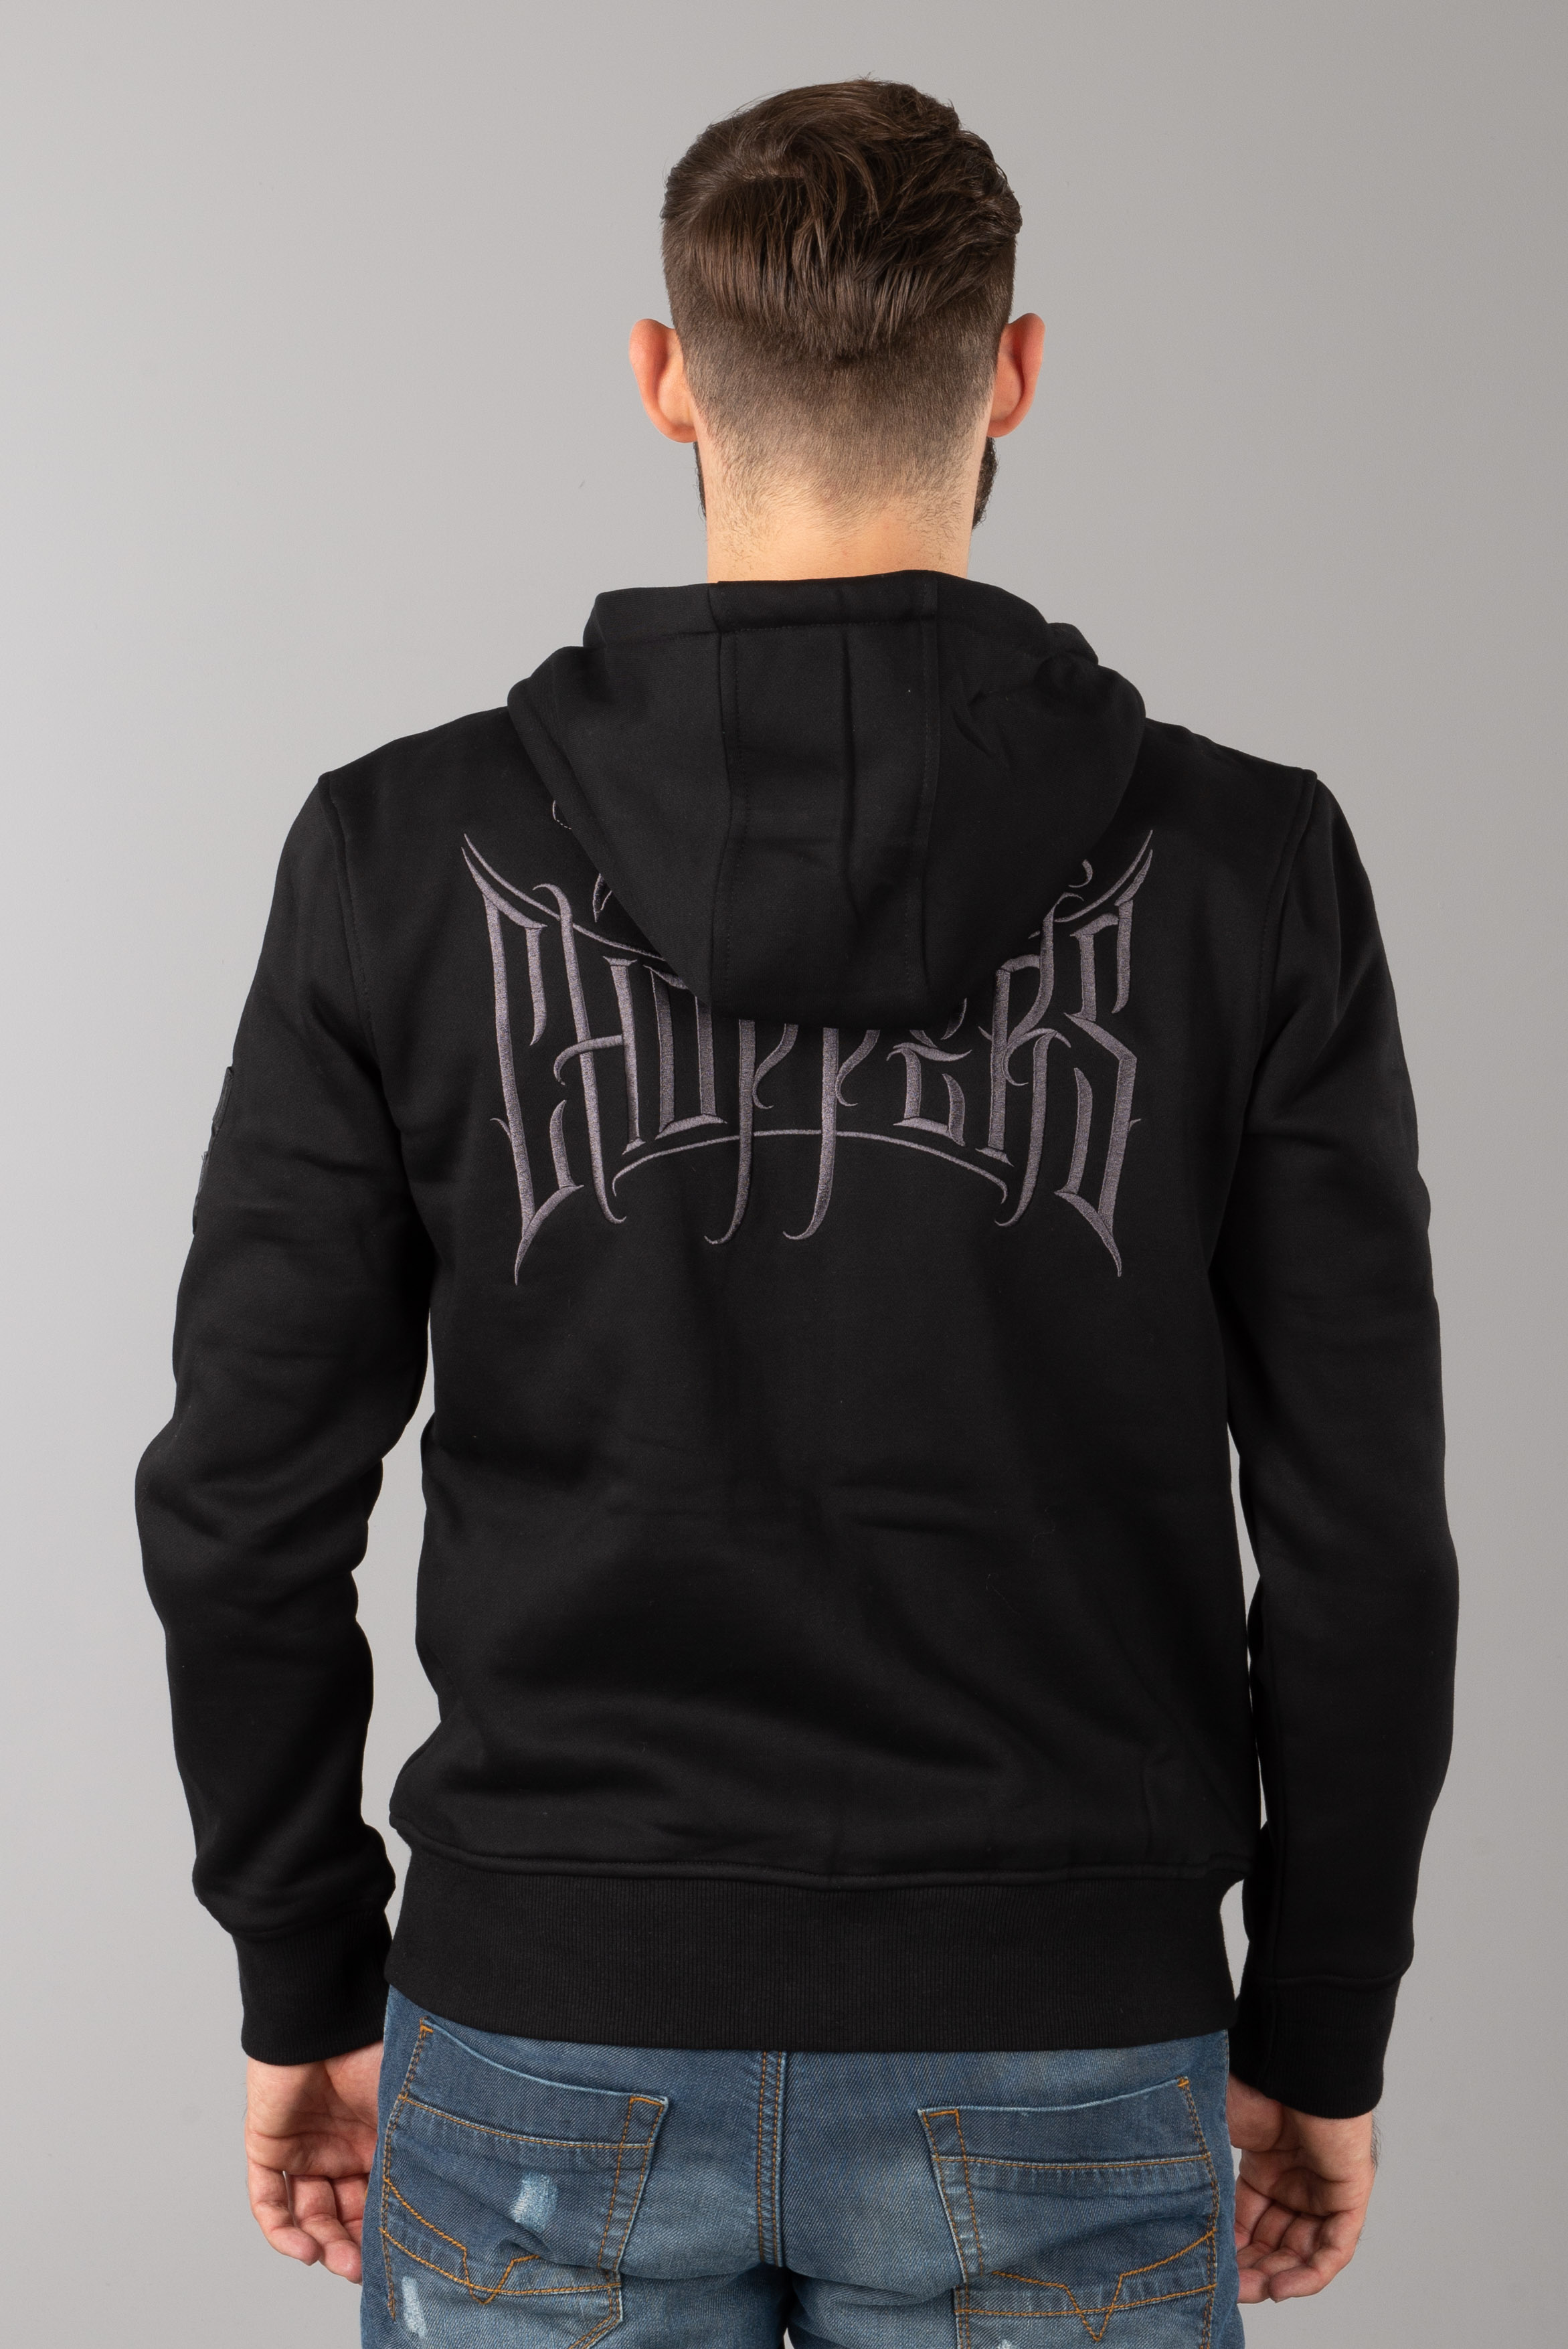 Hoodies & Pullover 24mx.at